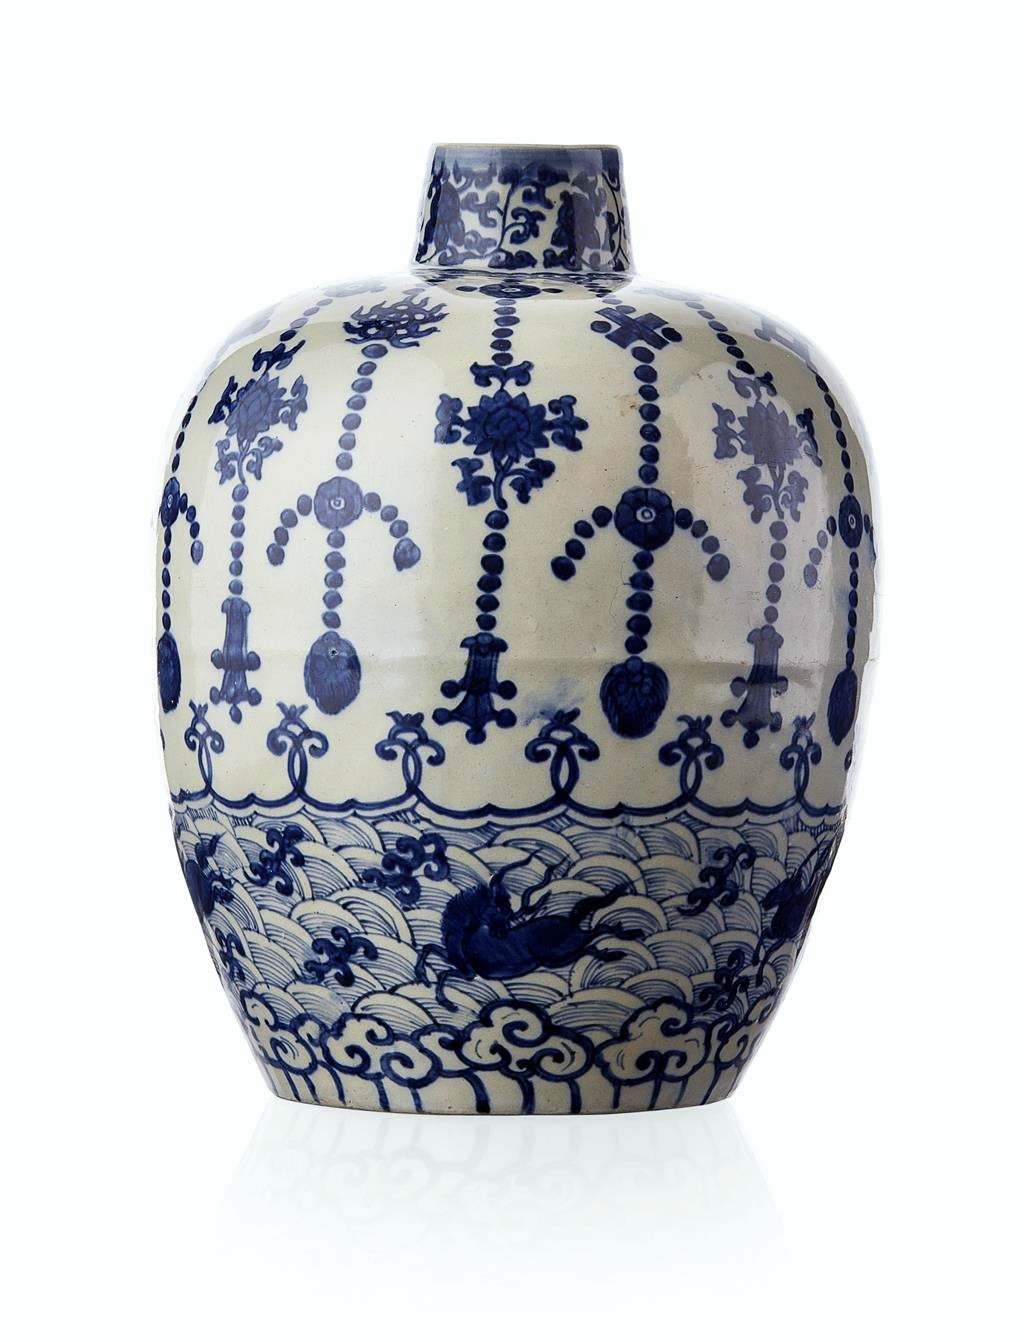 korean celadon vase of hong kong journalists private art collection is up for auction at regarding rare blue and white jar jiajing mark and of the period